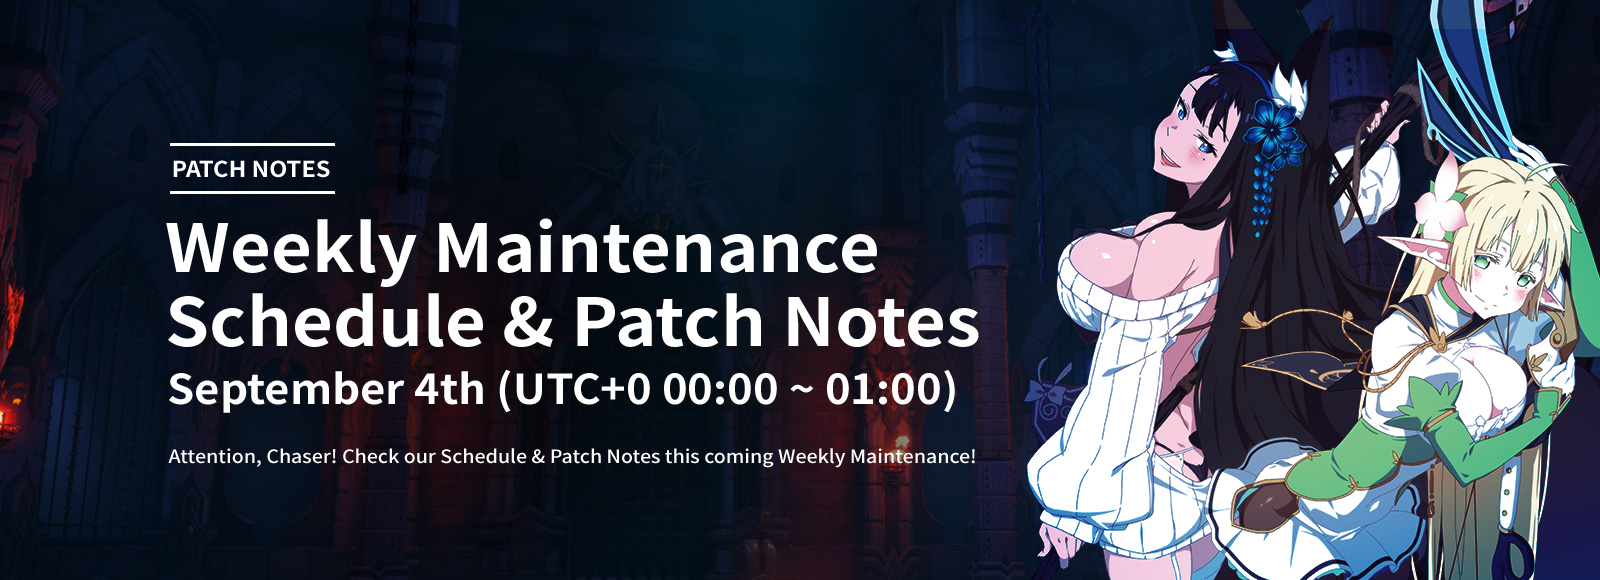 September 4th Weekly Maintenance Schedule & Patch Notes